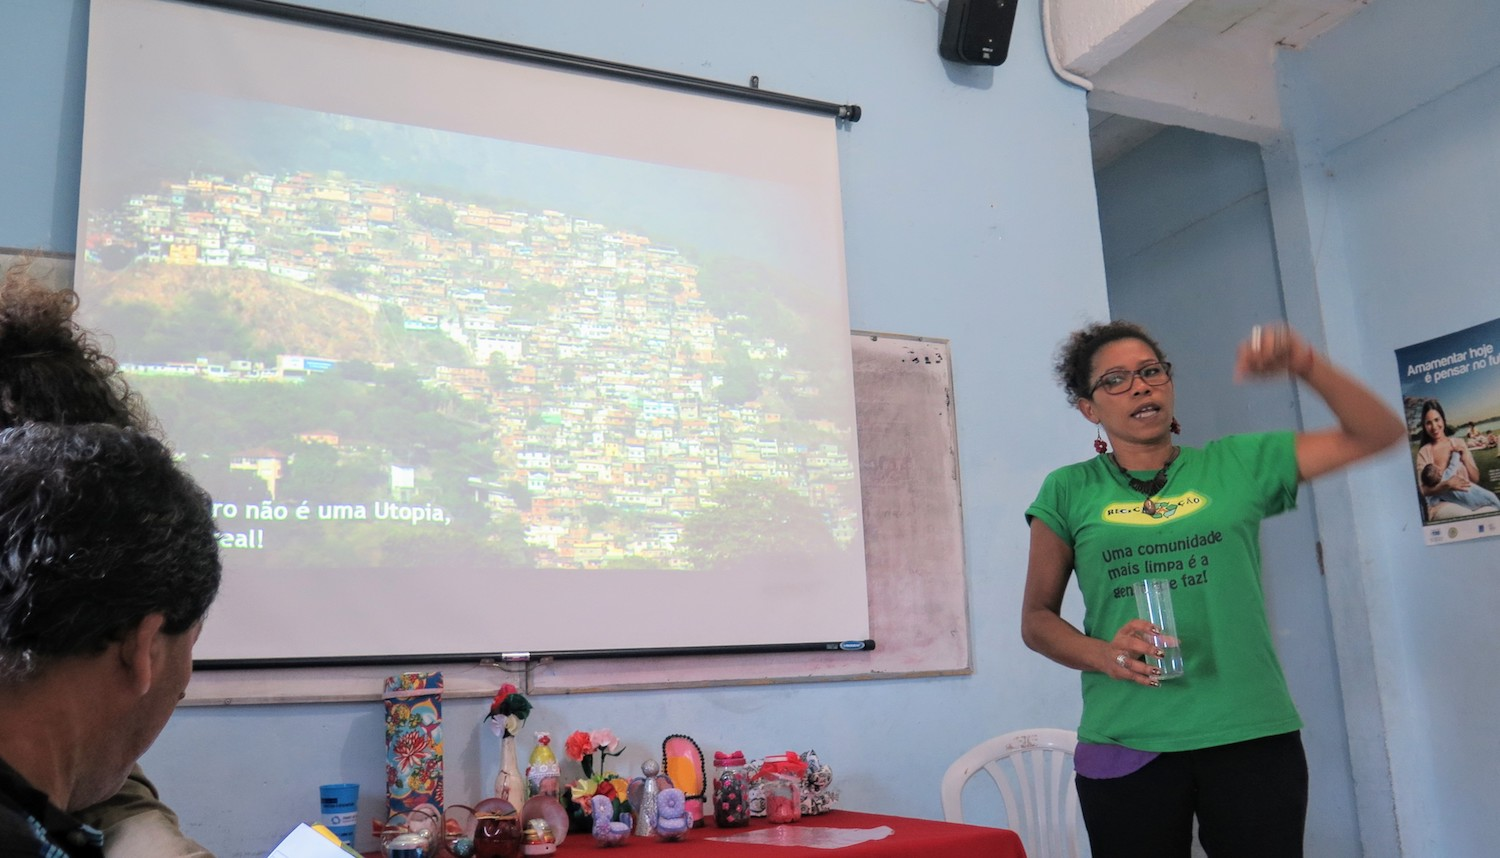 Cris presents the work of ReciclAção do the Sustainable Favela Network group